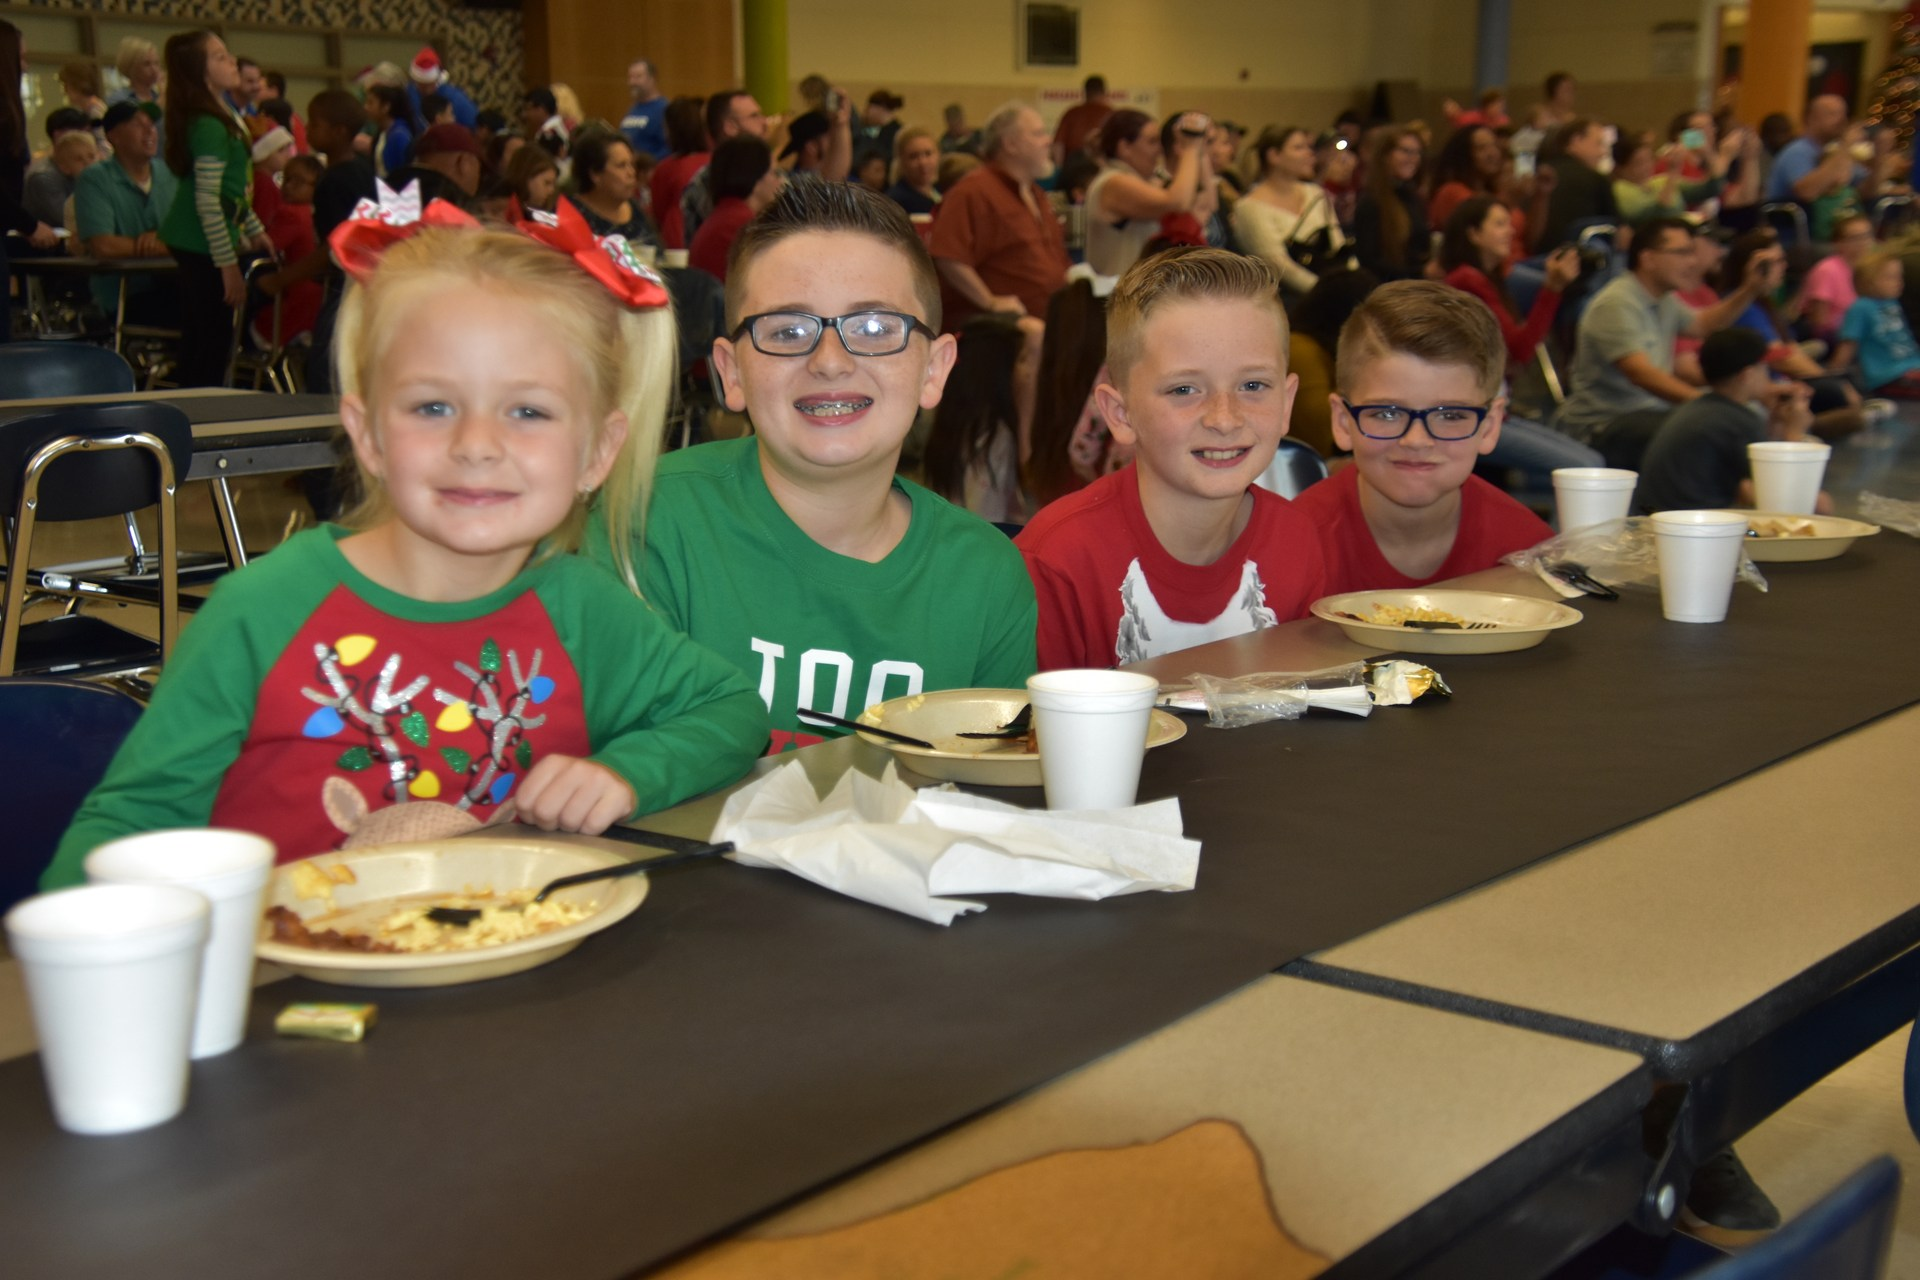 Kids enjoy a pancake breakfast during Pancakes with Santa.